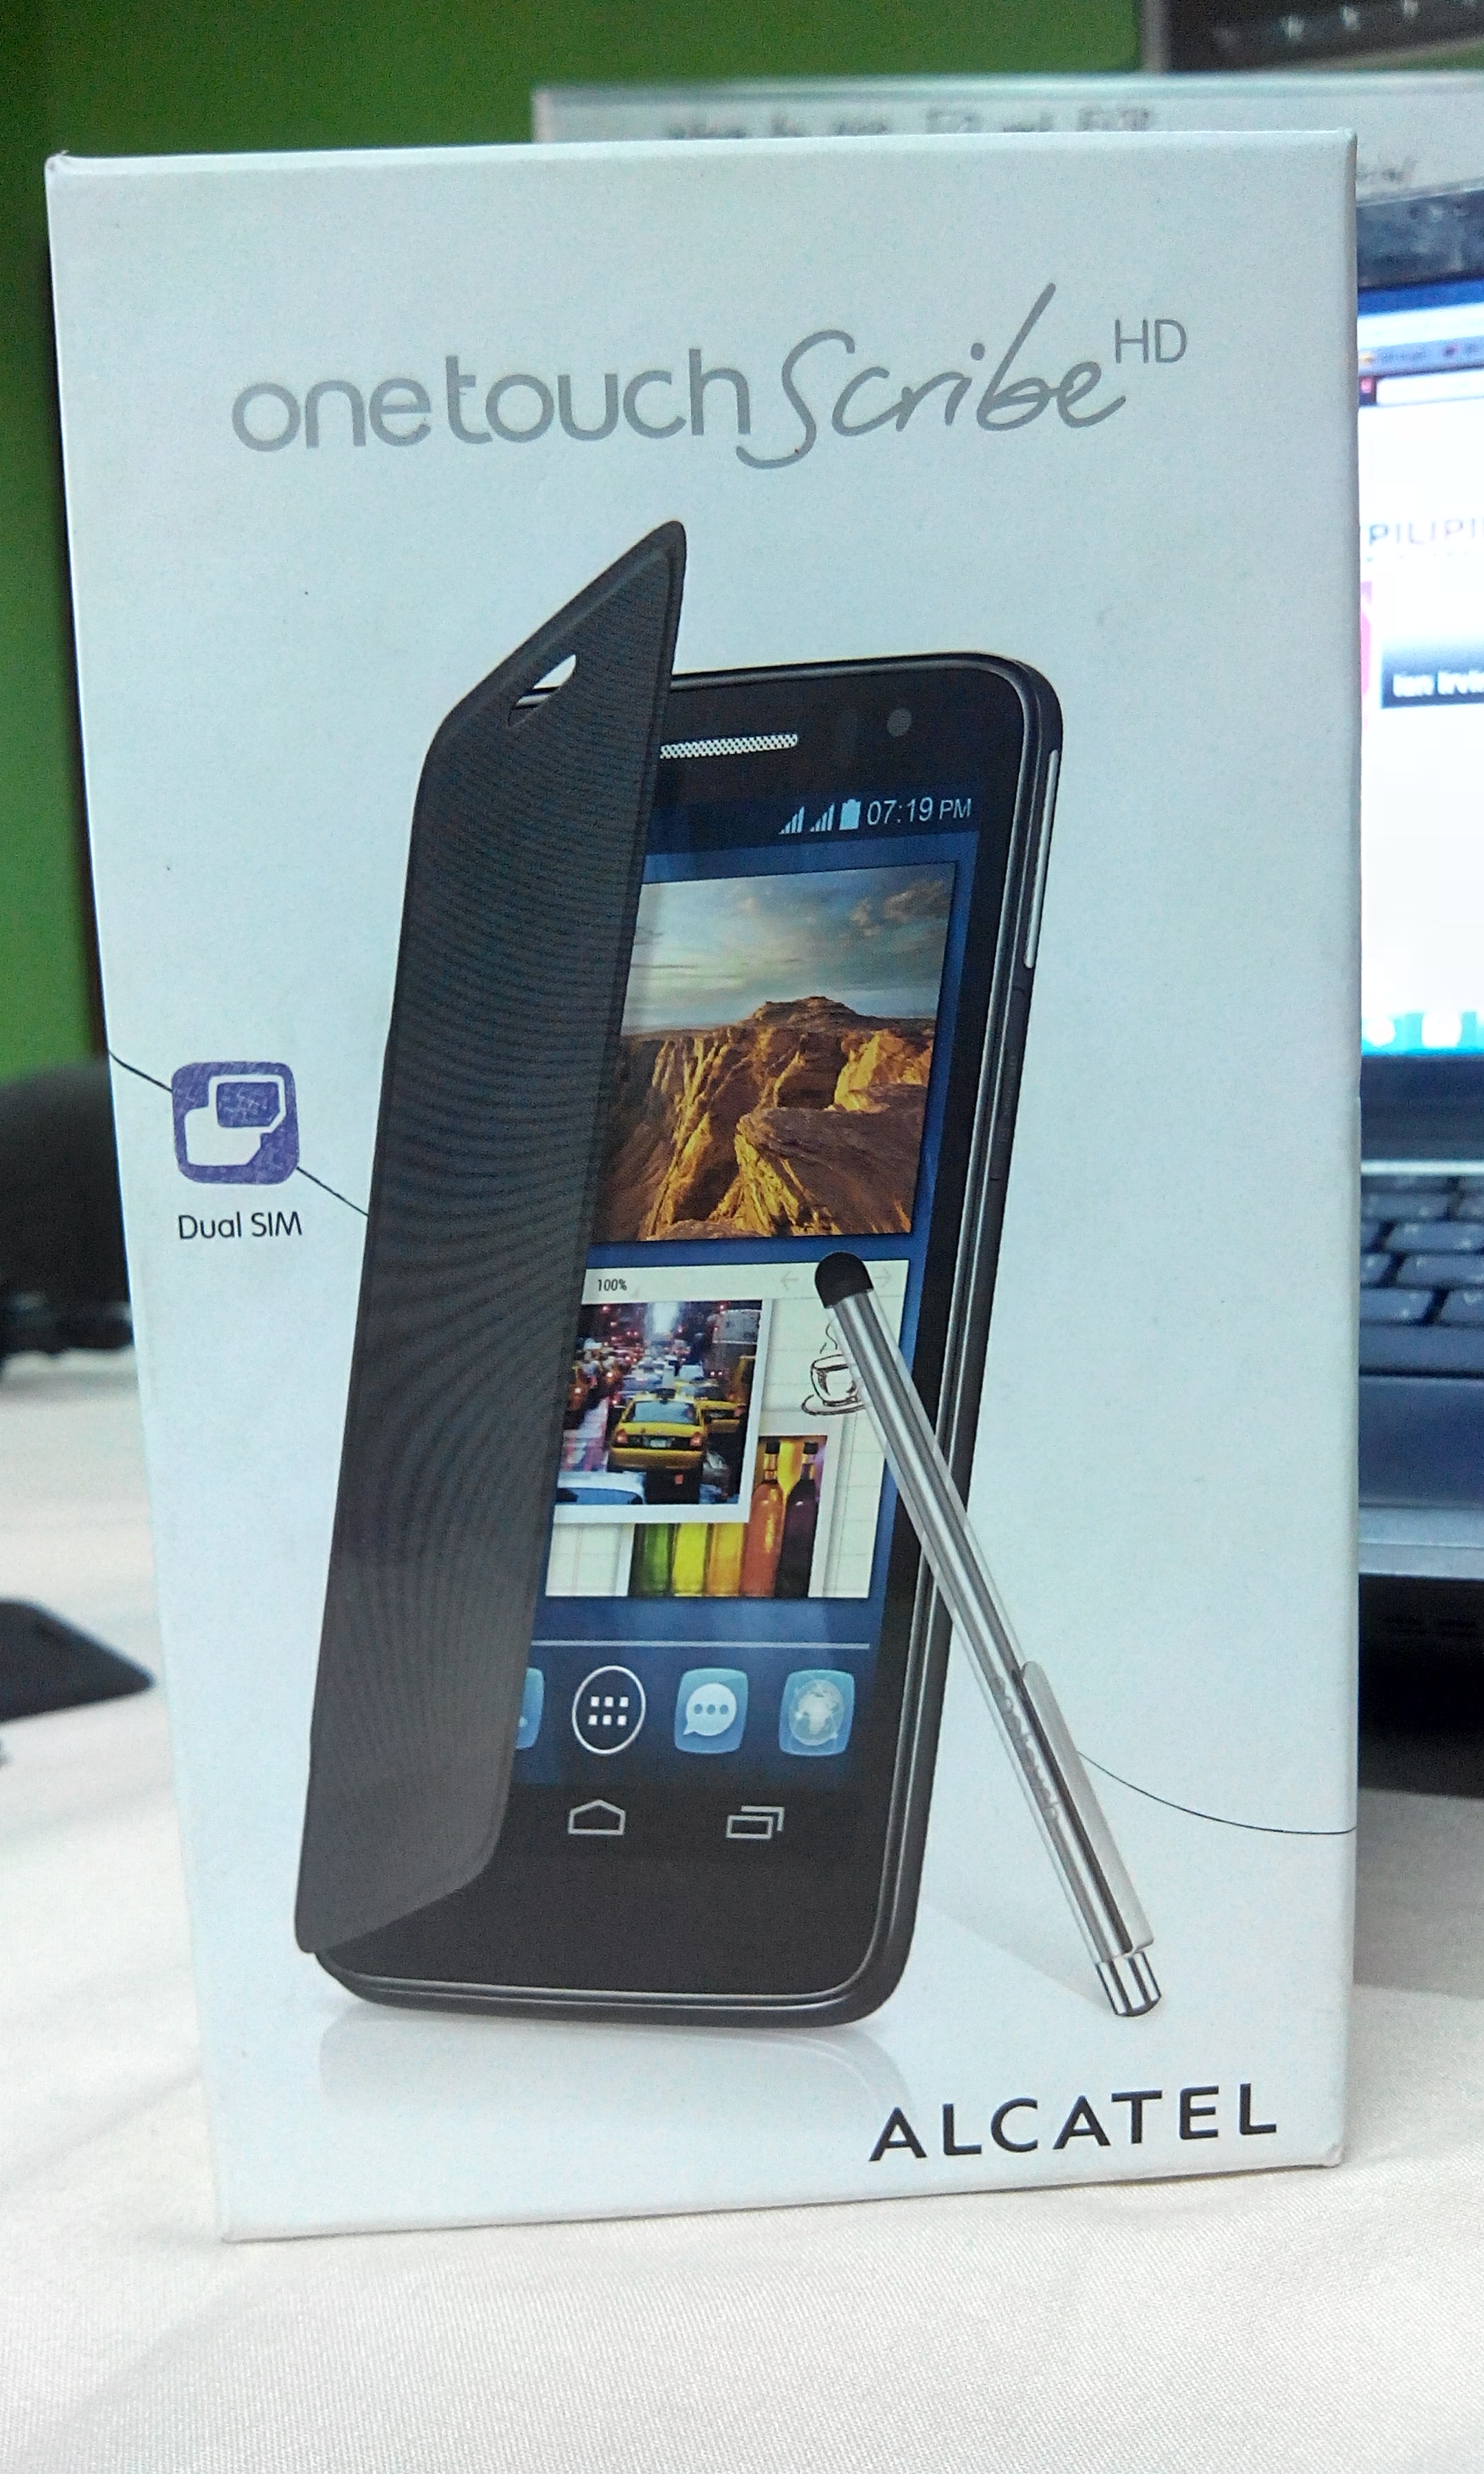 Alcatel One Touch Scribe HD, Alcatel One Touch Scribe HD Review, Gadget Pilipinas, Gadget Pilipinas